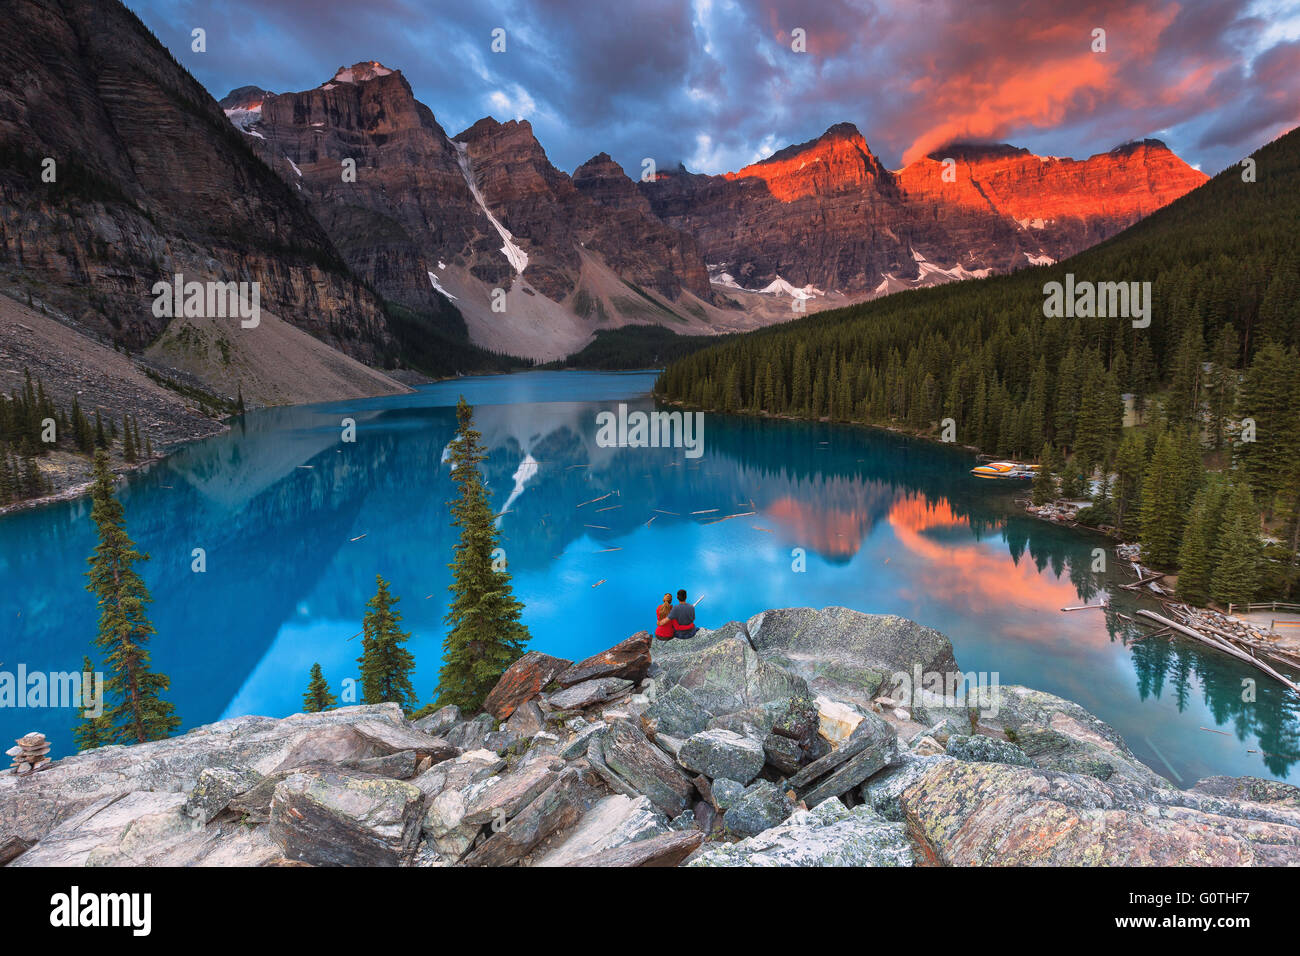 Un jeune couple au lac Moraine par Sunrise. Le parc national Banff, Alberta, Canada. Photo Stock